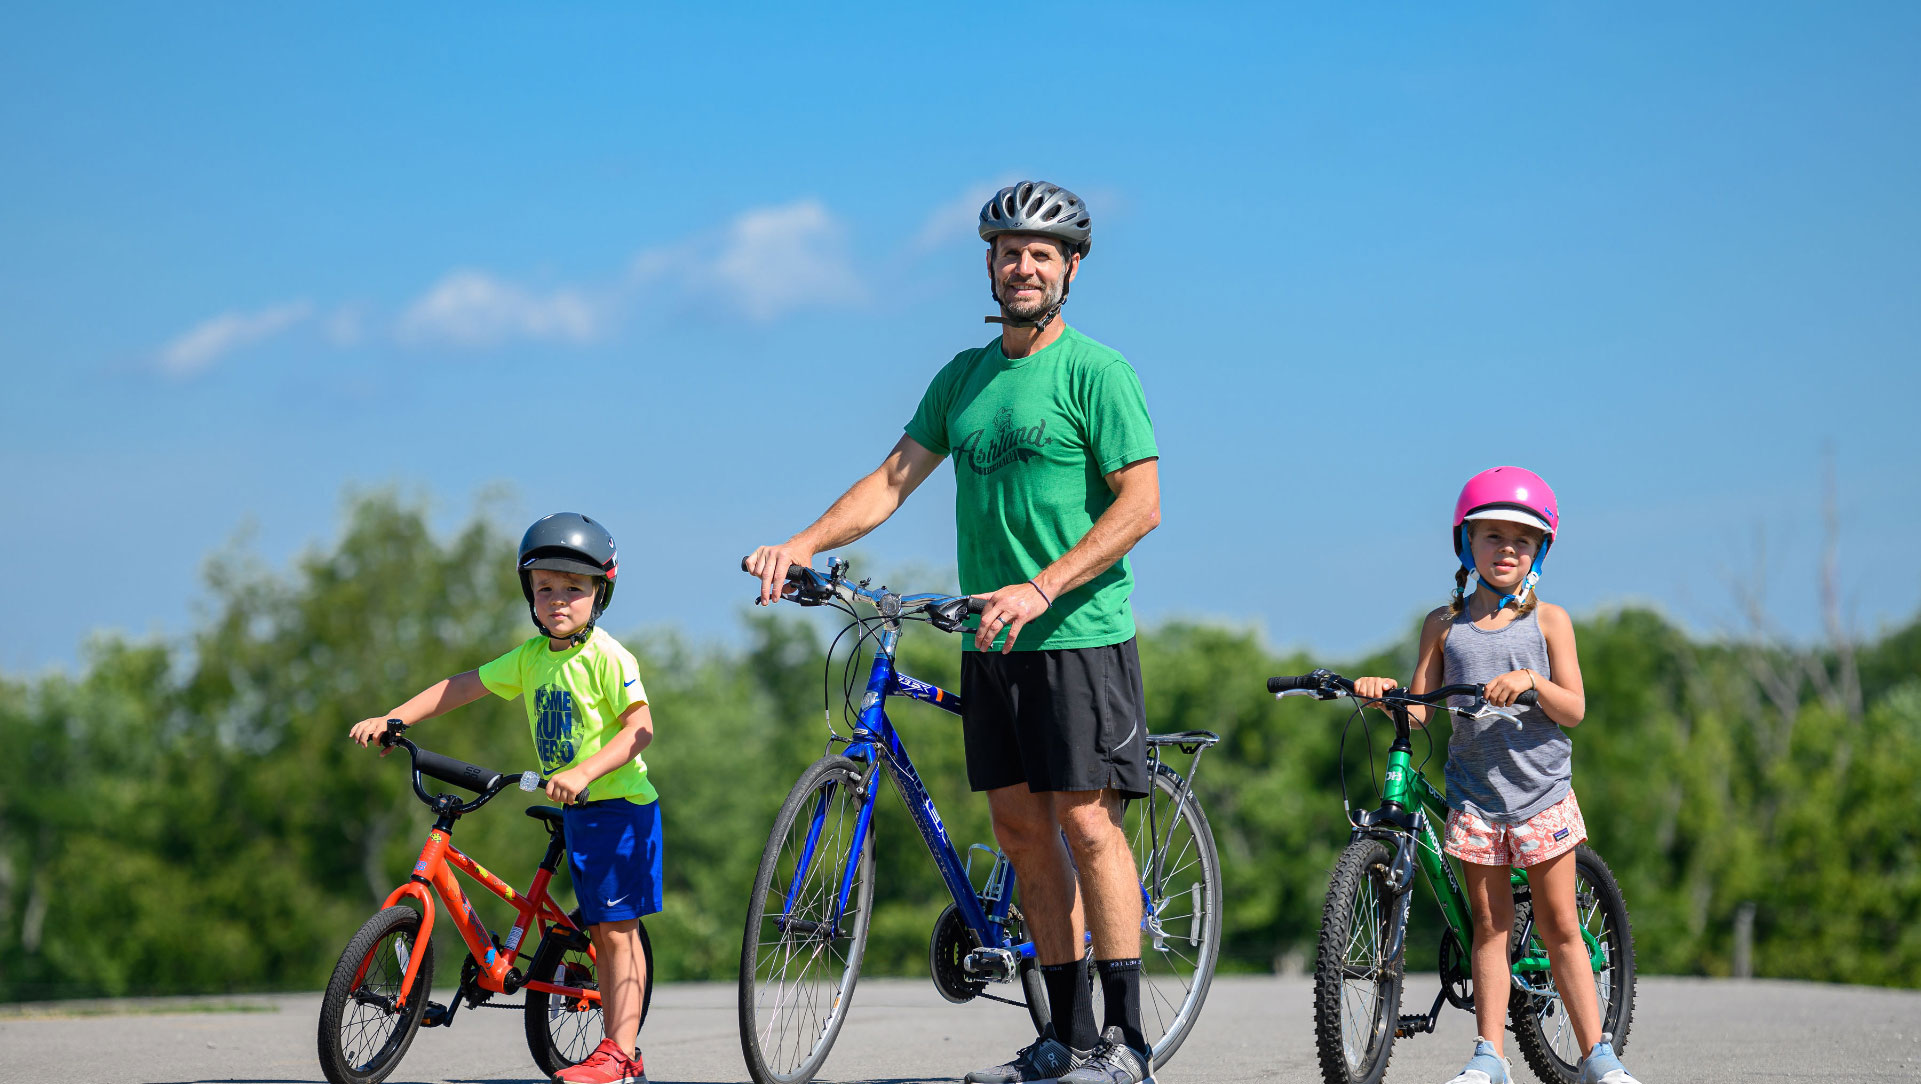 Ryan, wearing a helmet, stands next to a blue bicycle. He is flanked by his young son and daughter, who are both standing by their bicycles and wearing helmets.